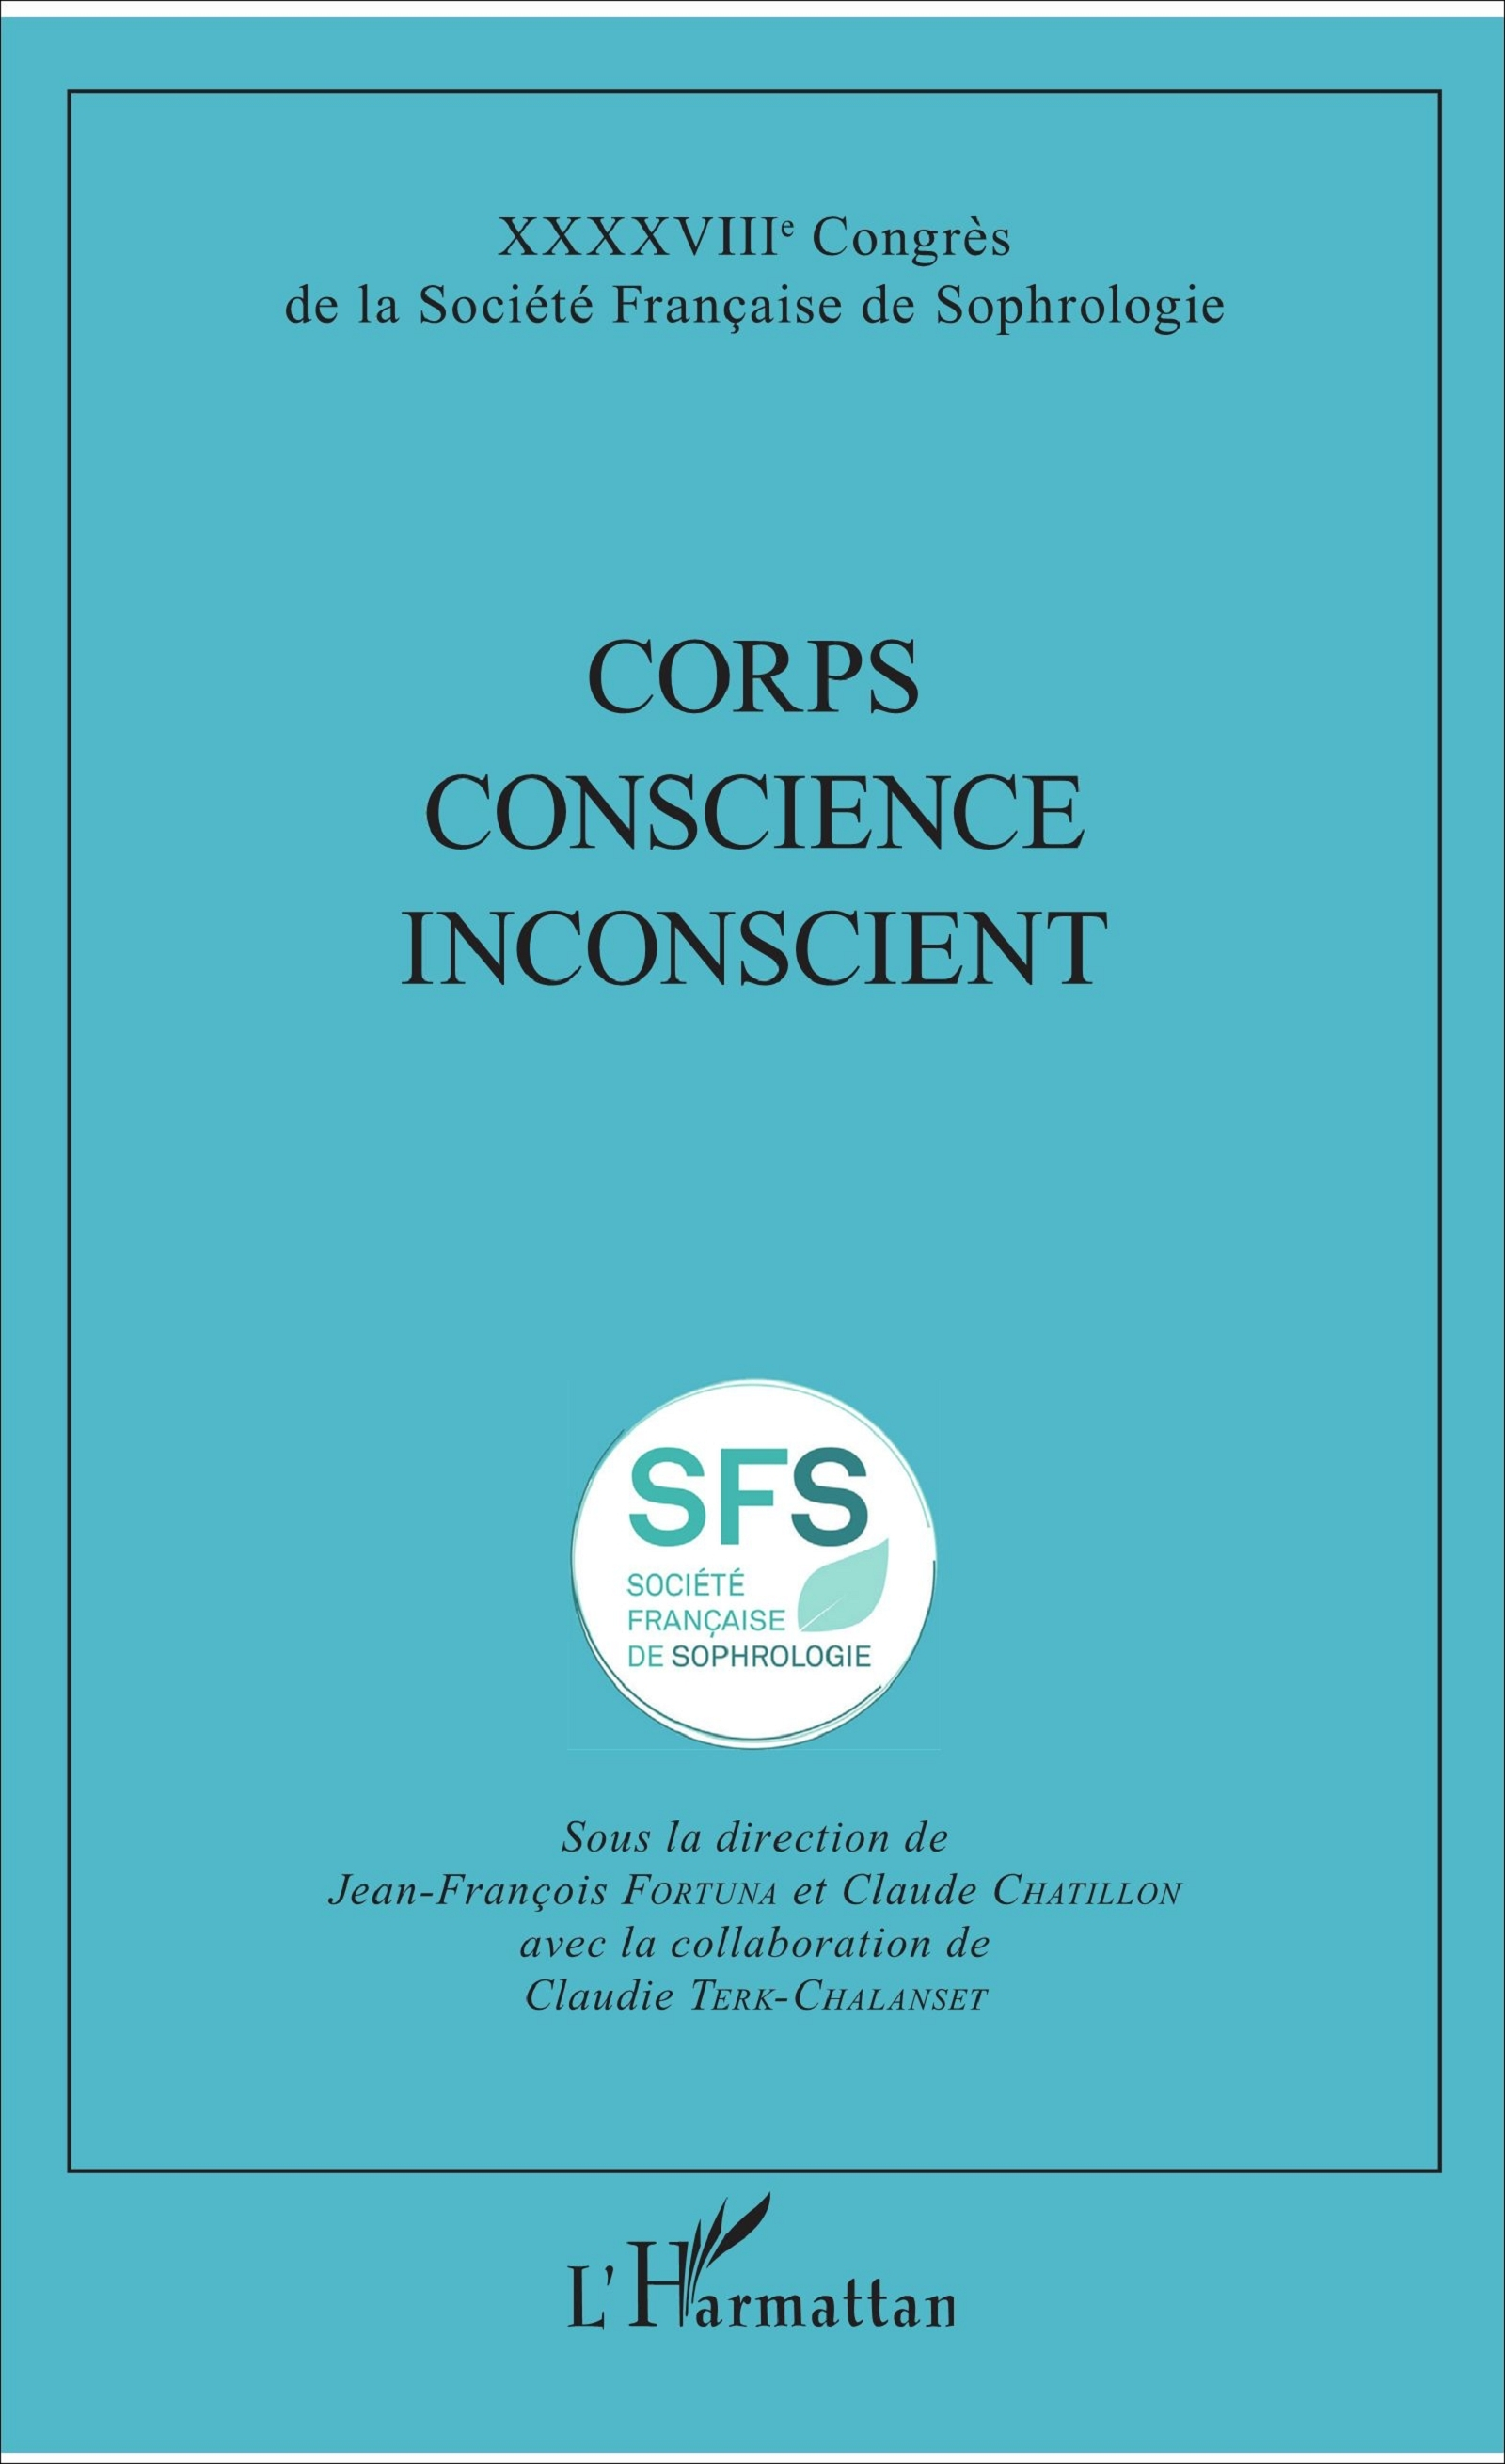 CORPS CONSCIENCE INCONSCIENT